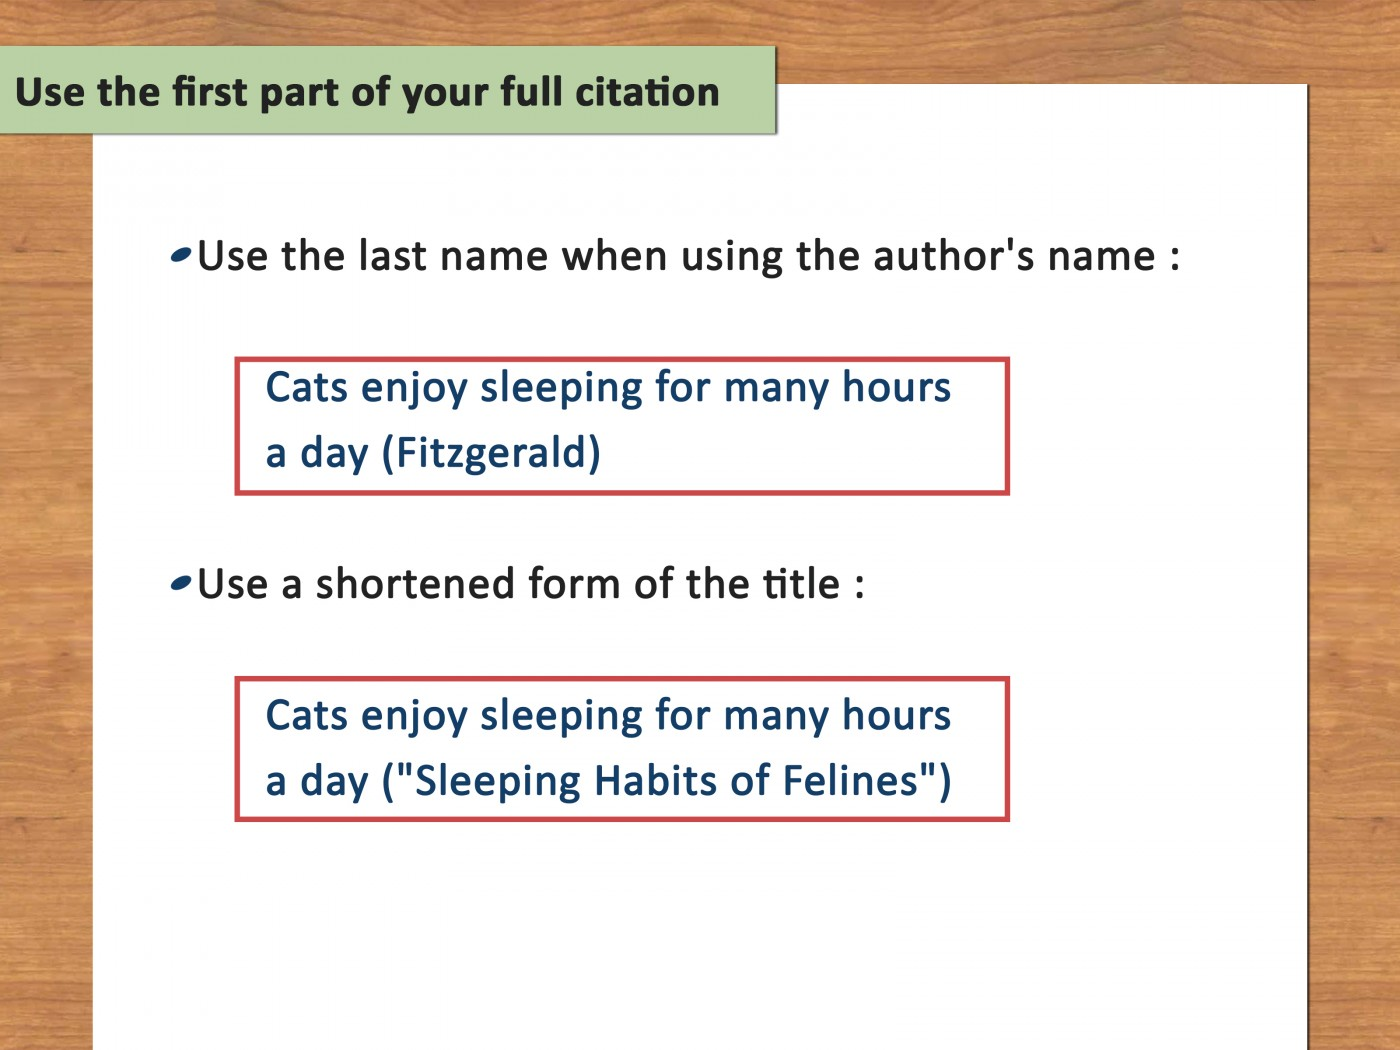 012 Cite Website Using Mla Format Step Version Research Paper In Text Wonderful Citations 1400